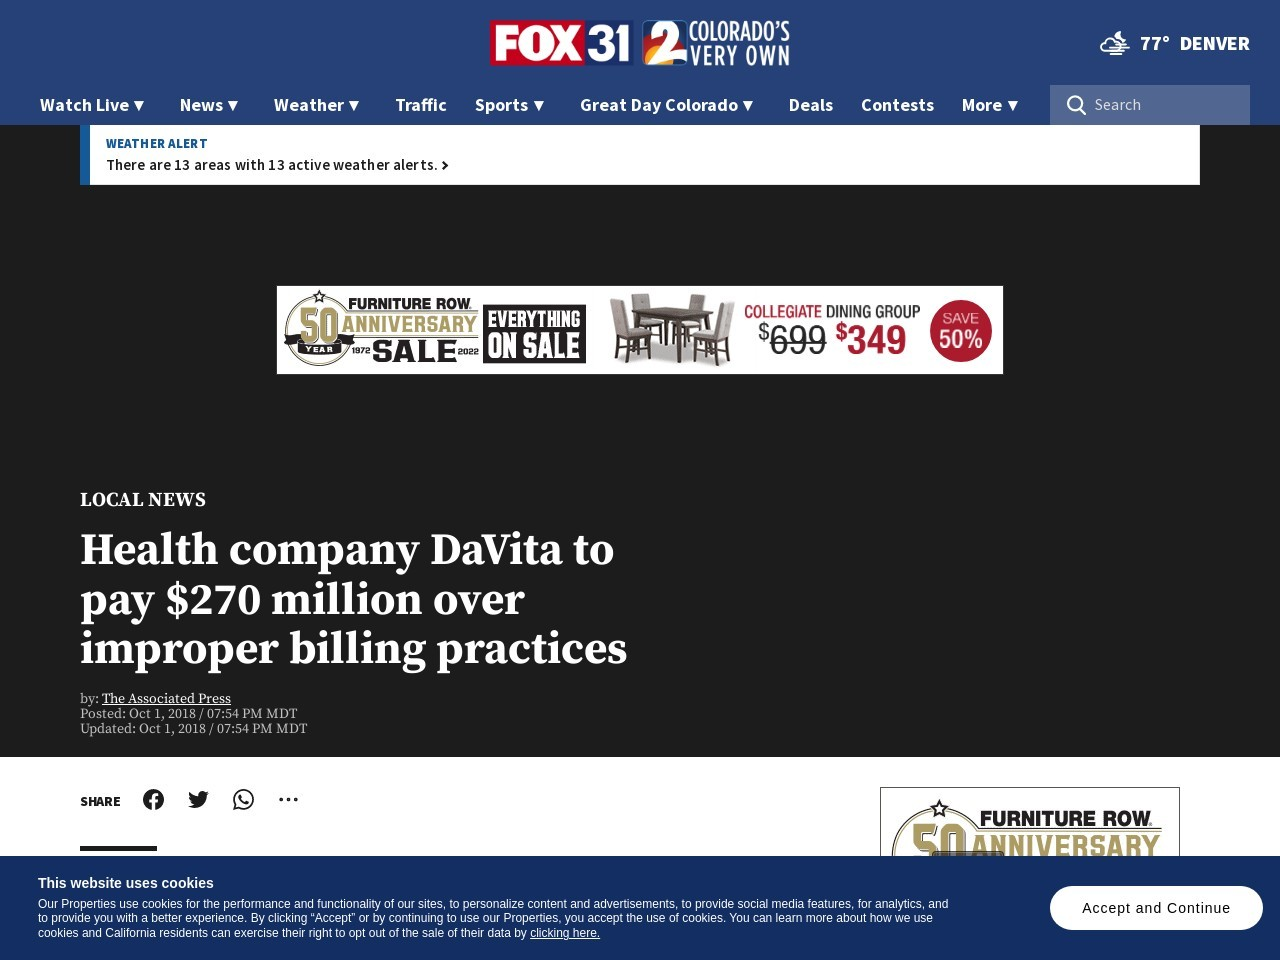 Health company DaVita to pay $270 million over improper billing practices